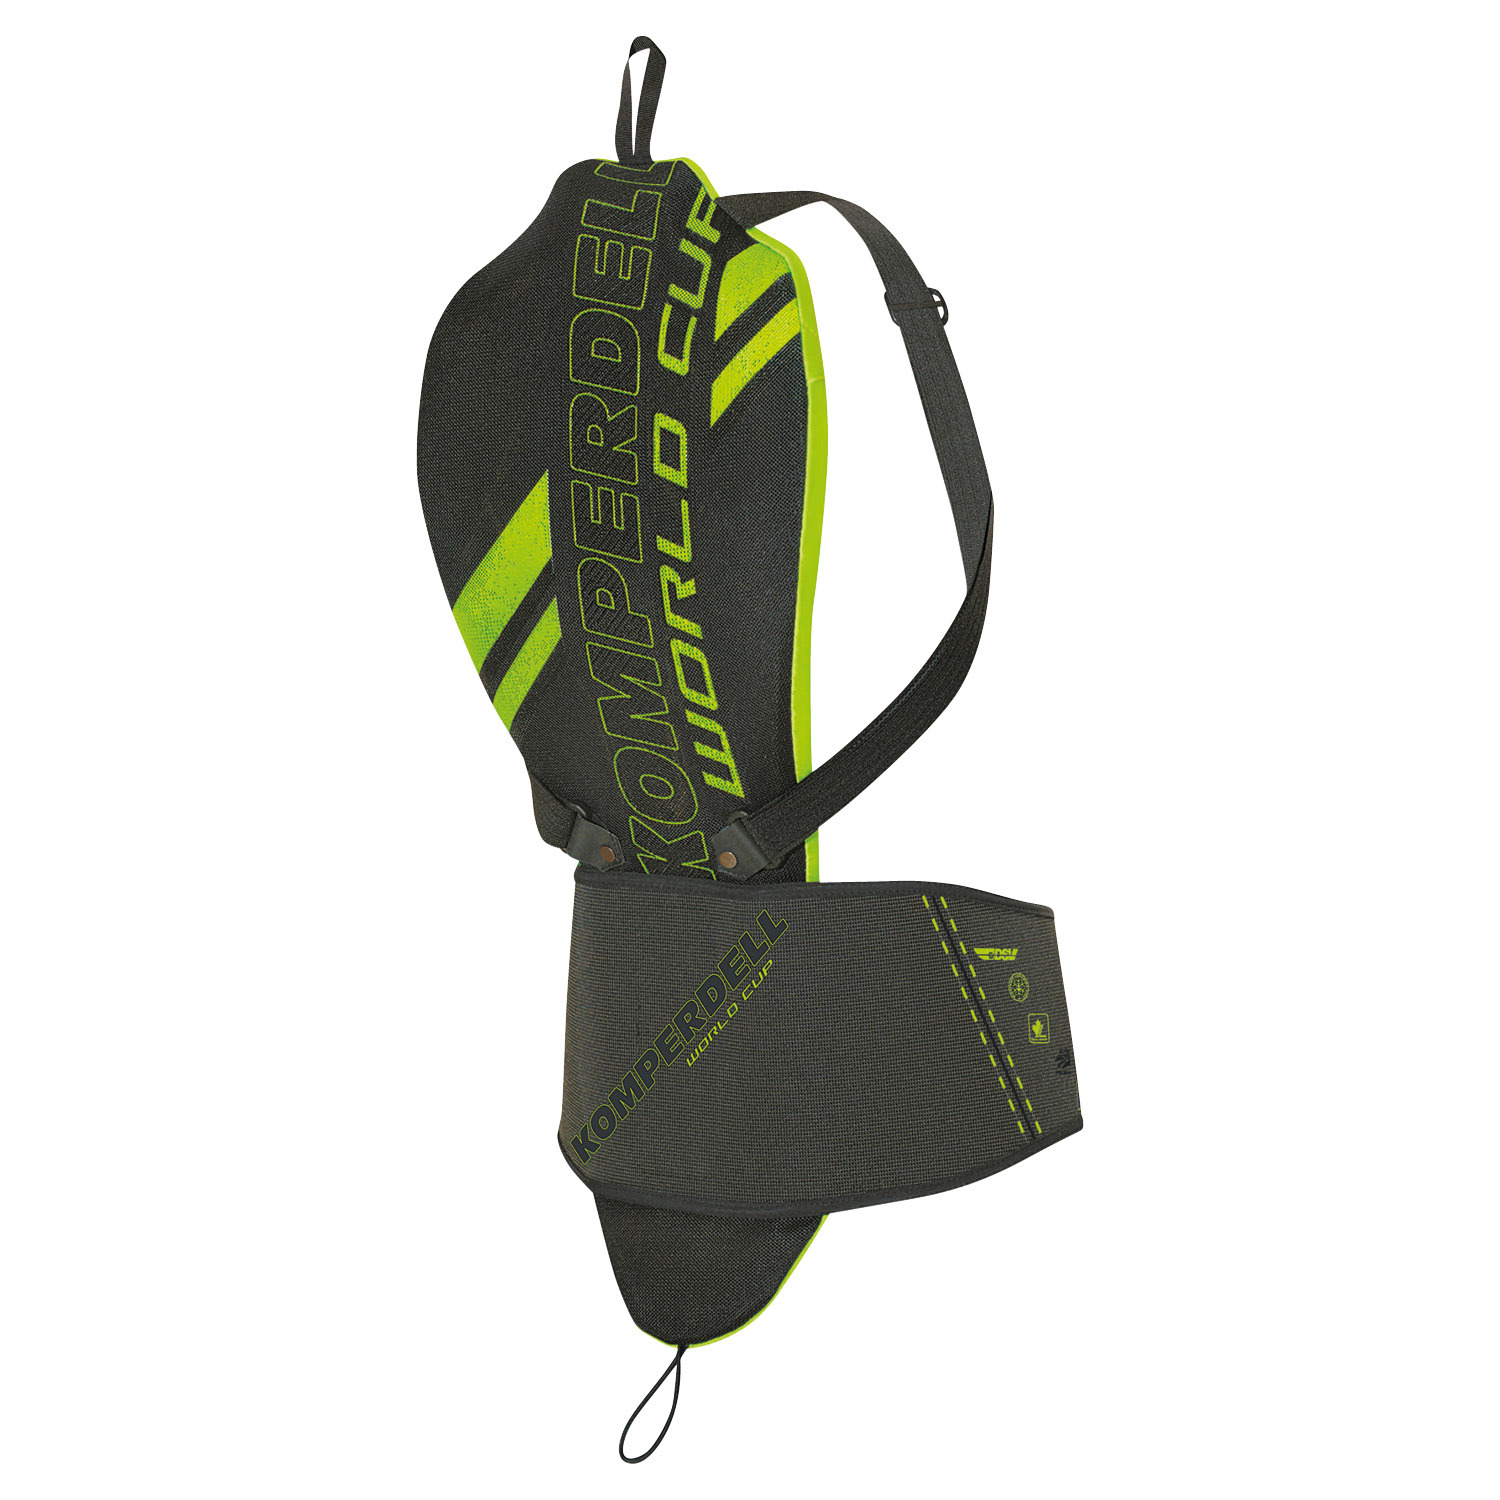 FIS Approved Protector Pack